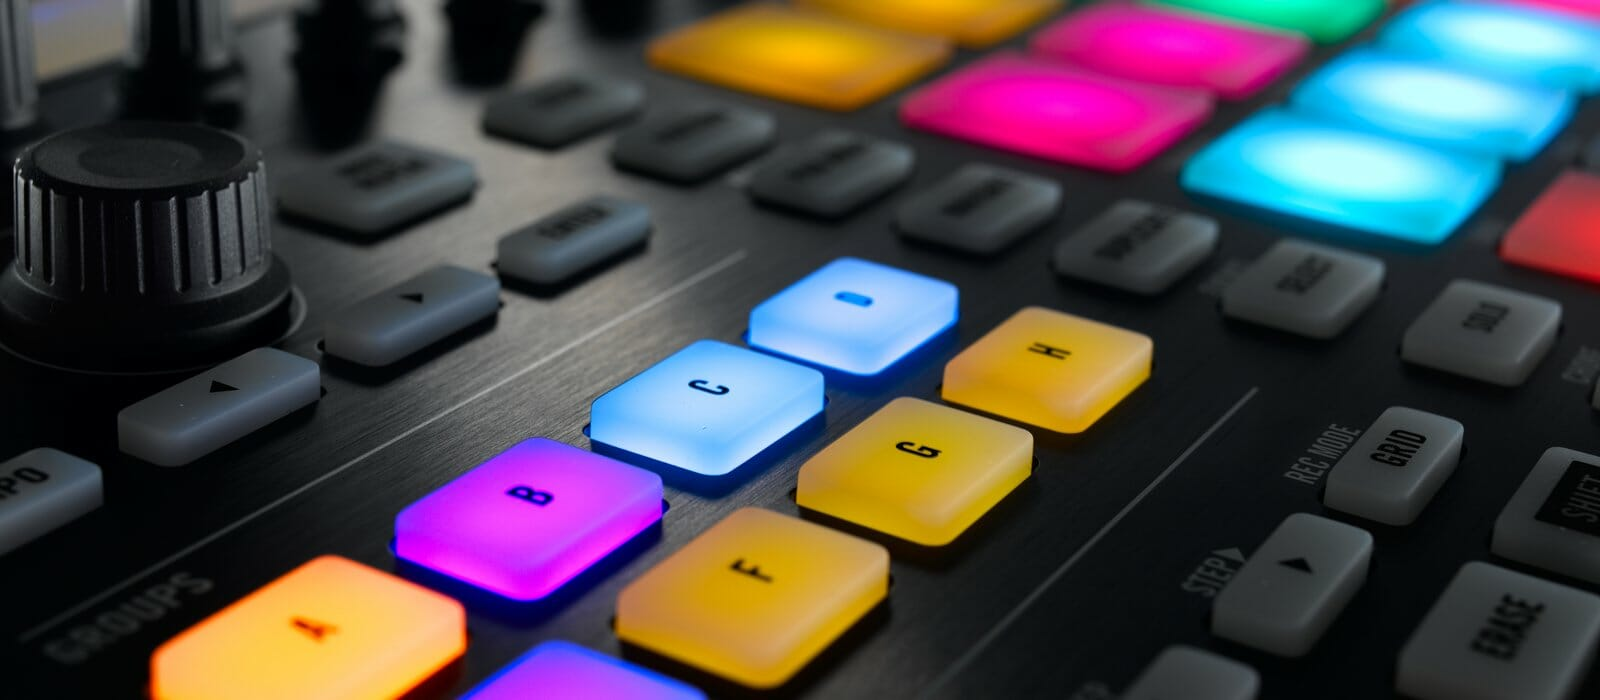 img-ce-gallery-maschine_intro_gallery_02_2x_01-d3447c70608d64bc3cd1bc3088707f8d-d